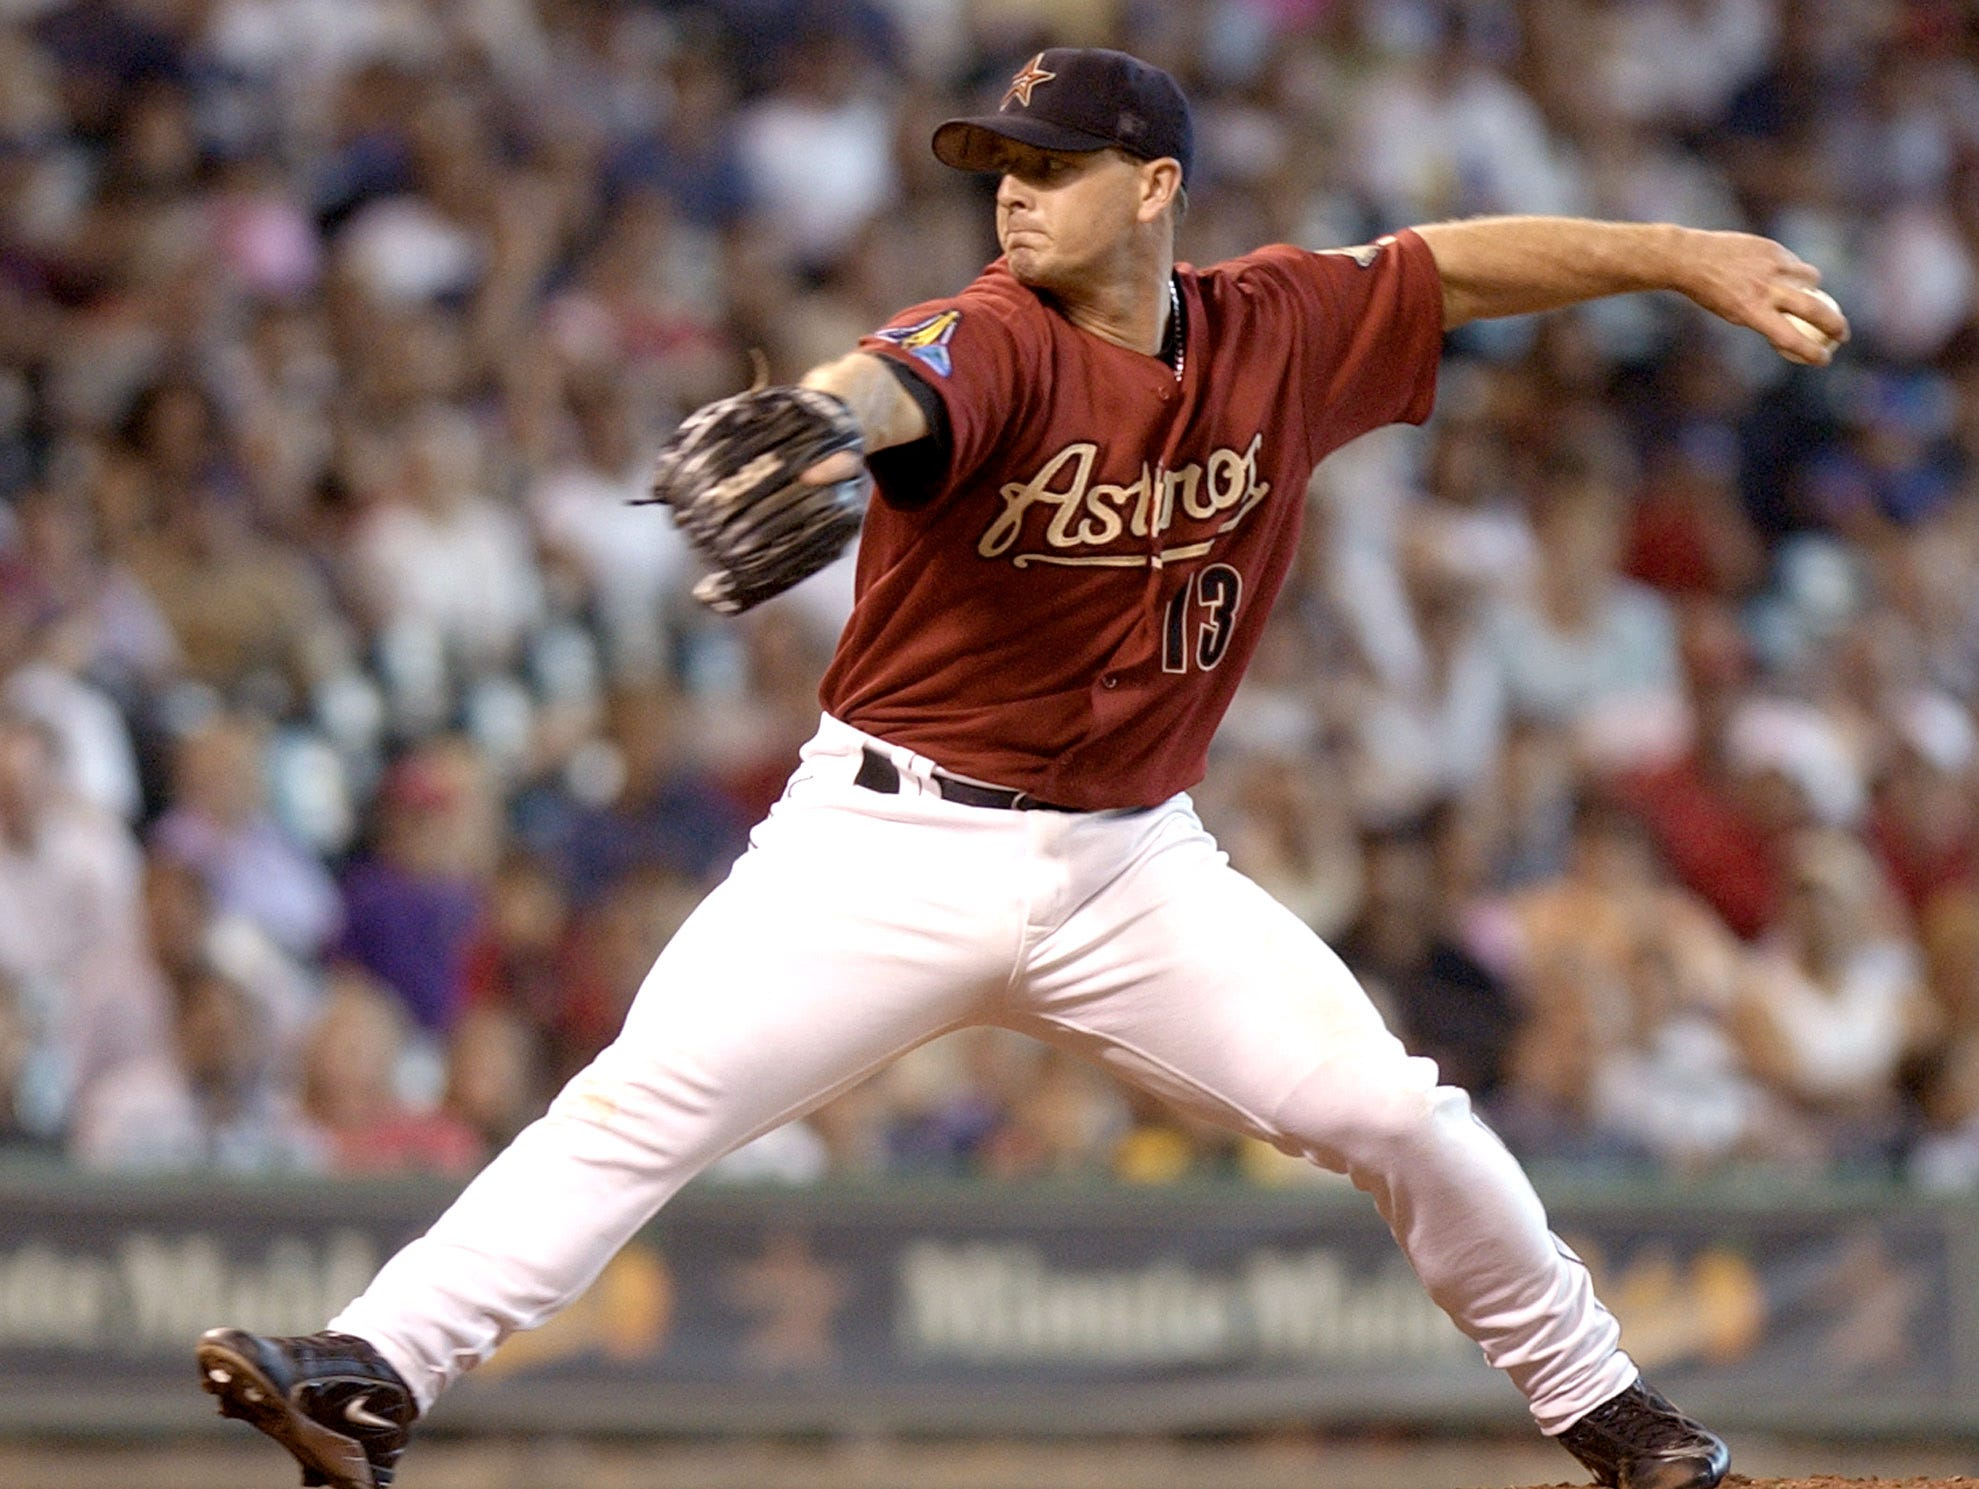 LHP Billy Wagner (4th year)